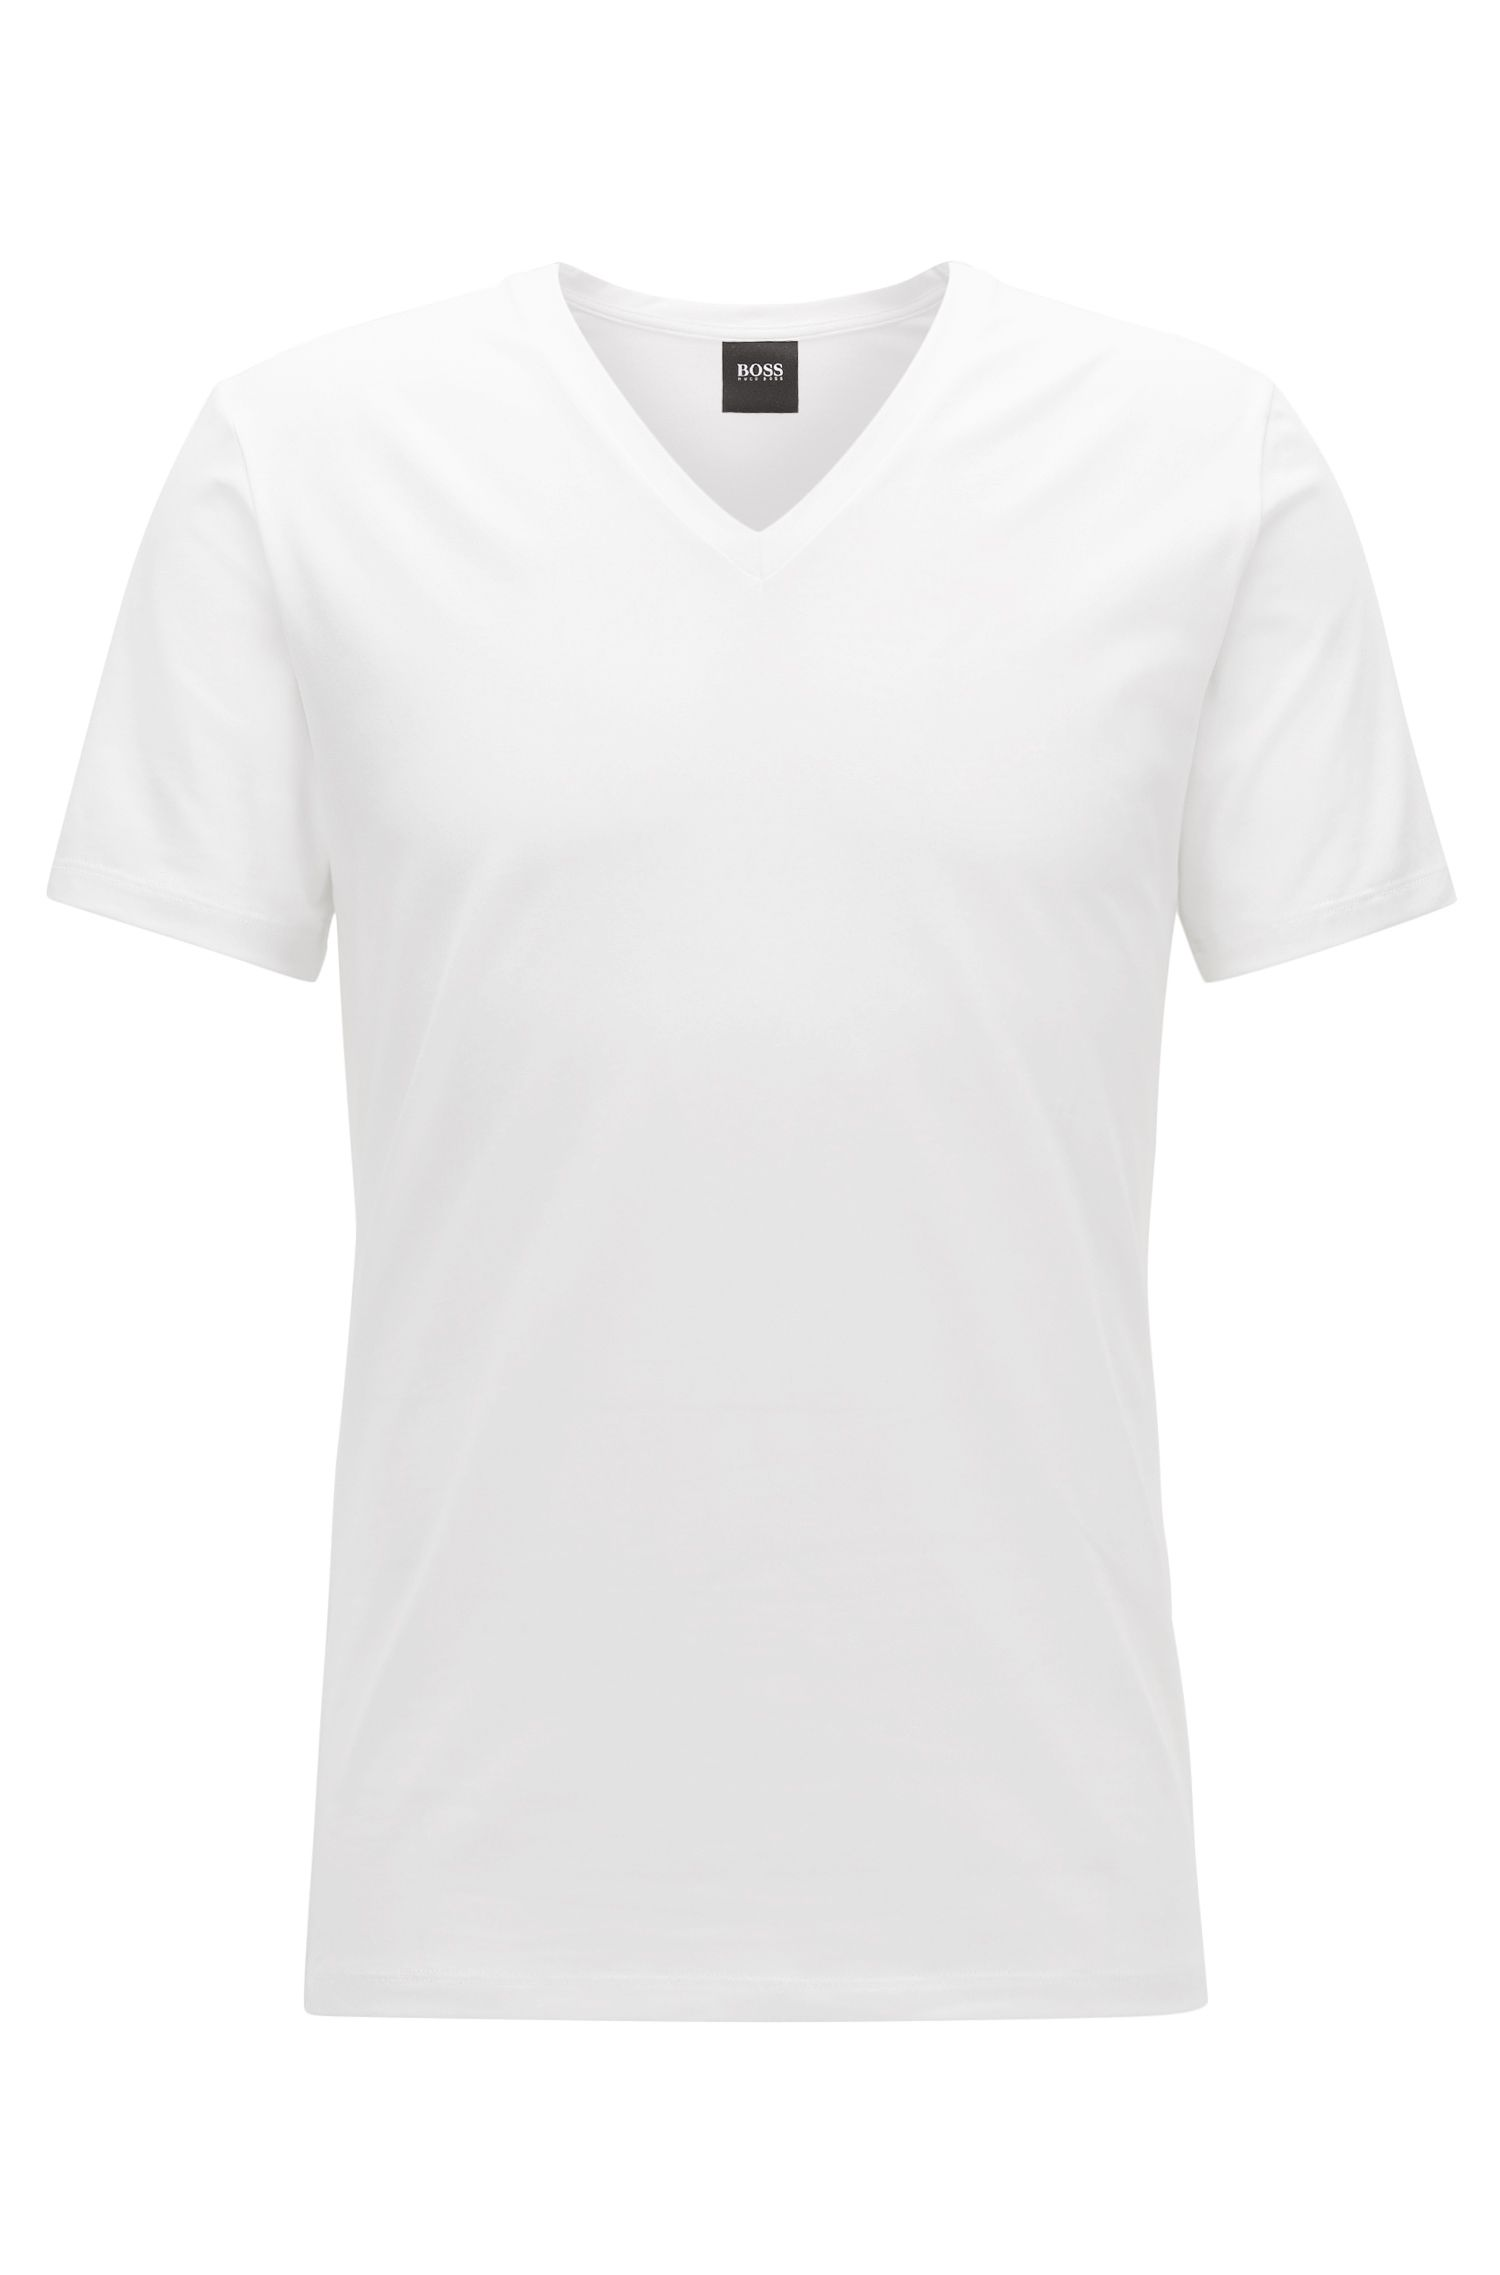 V-neck underwear T-shirt in Egyptian stretch cotton, White